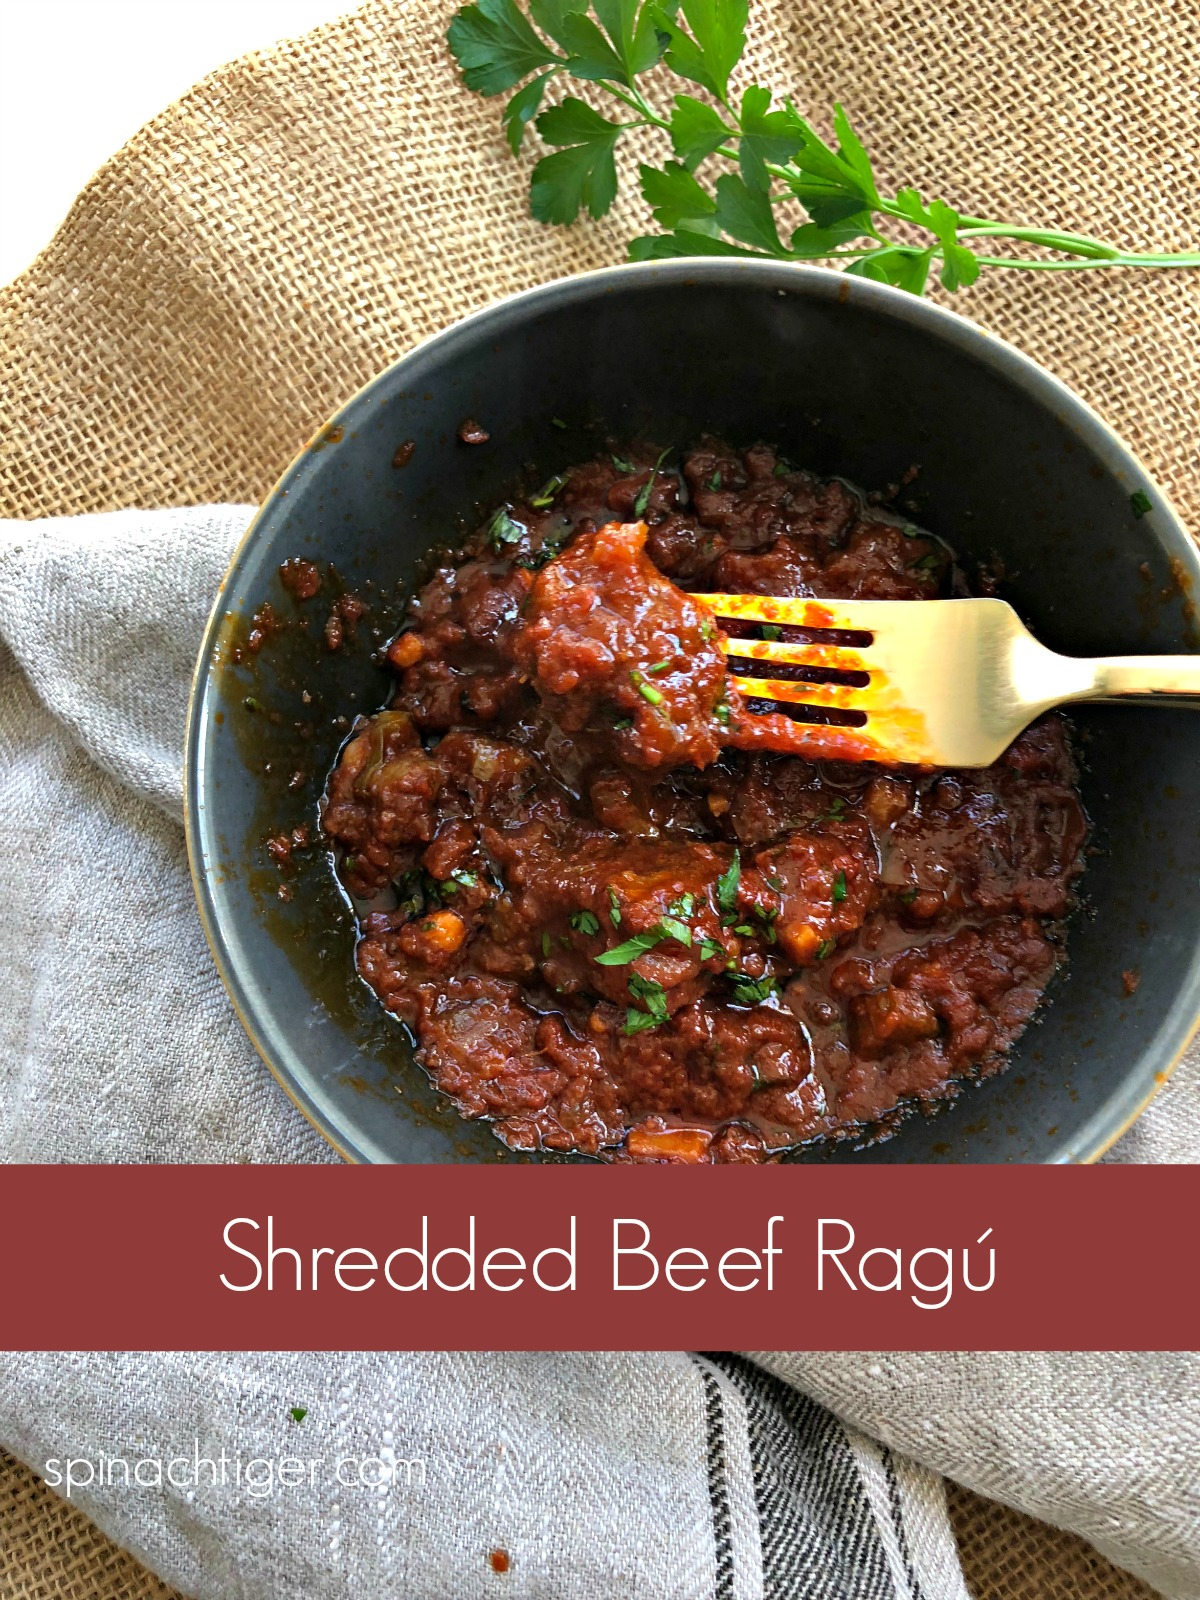 Italian Shredded Beef Ragu